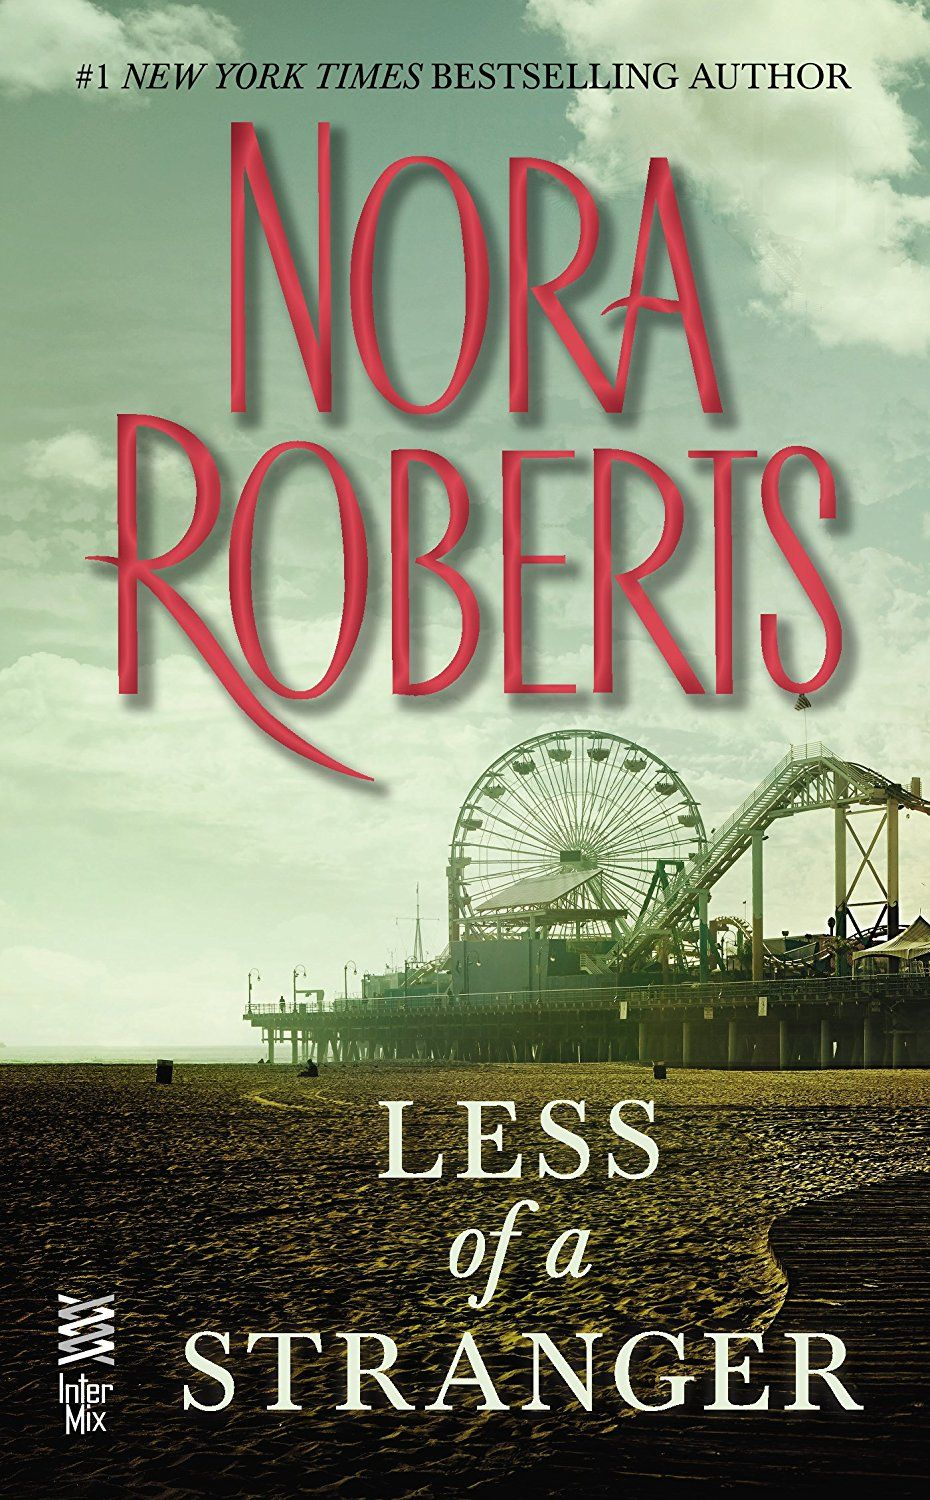 Less of a Stranger Kindle edition by Nora Roberts